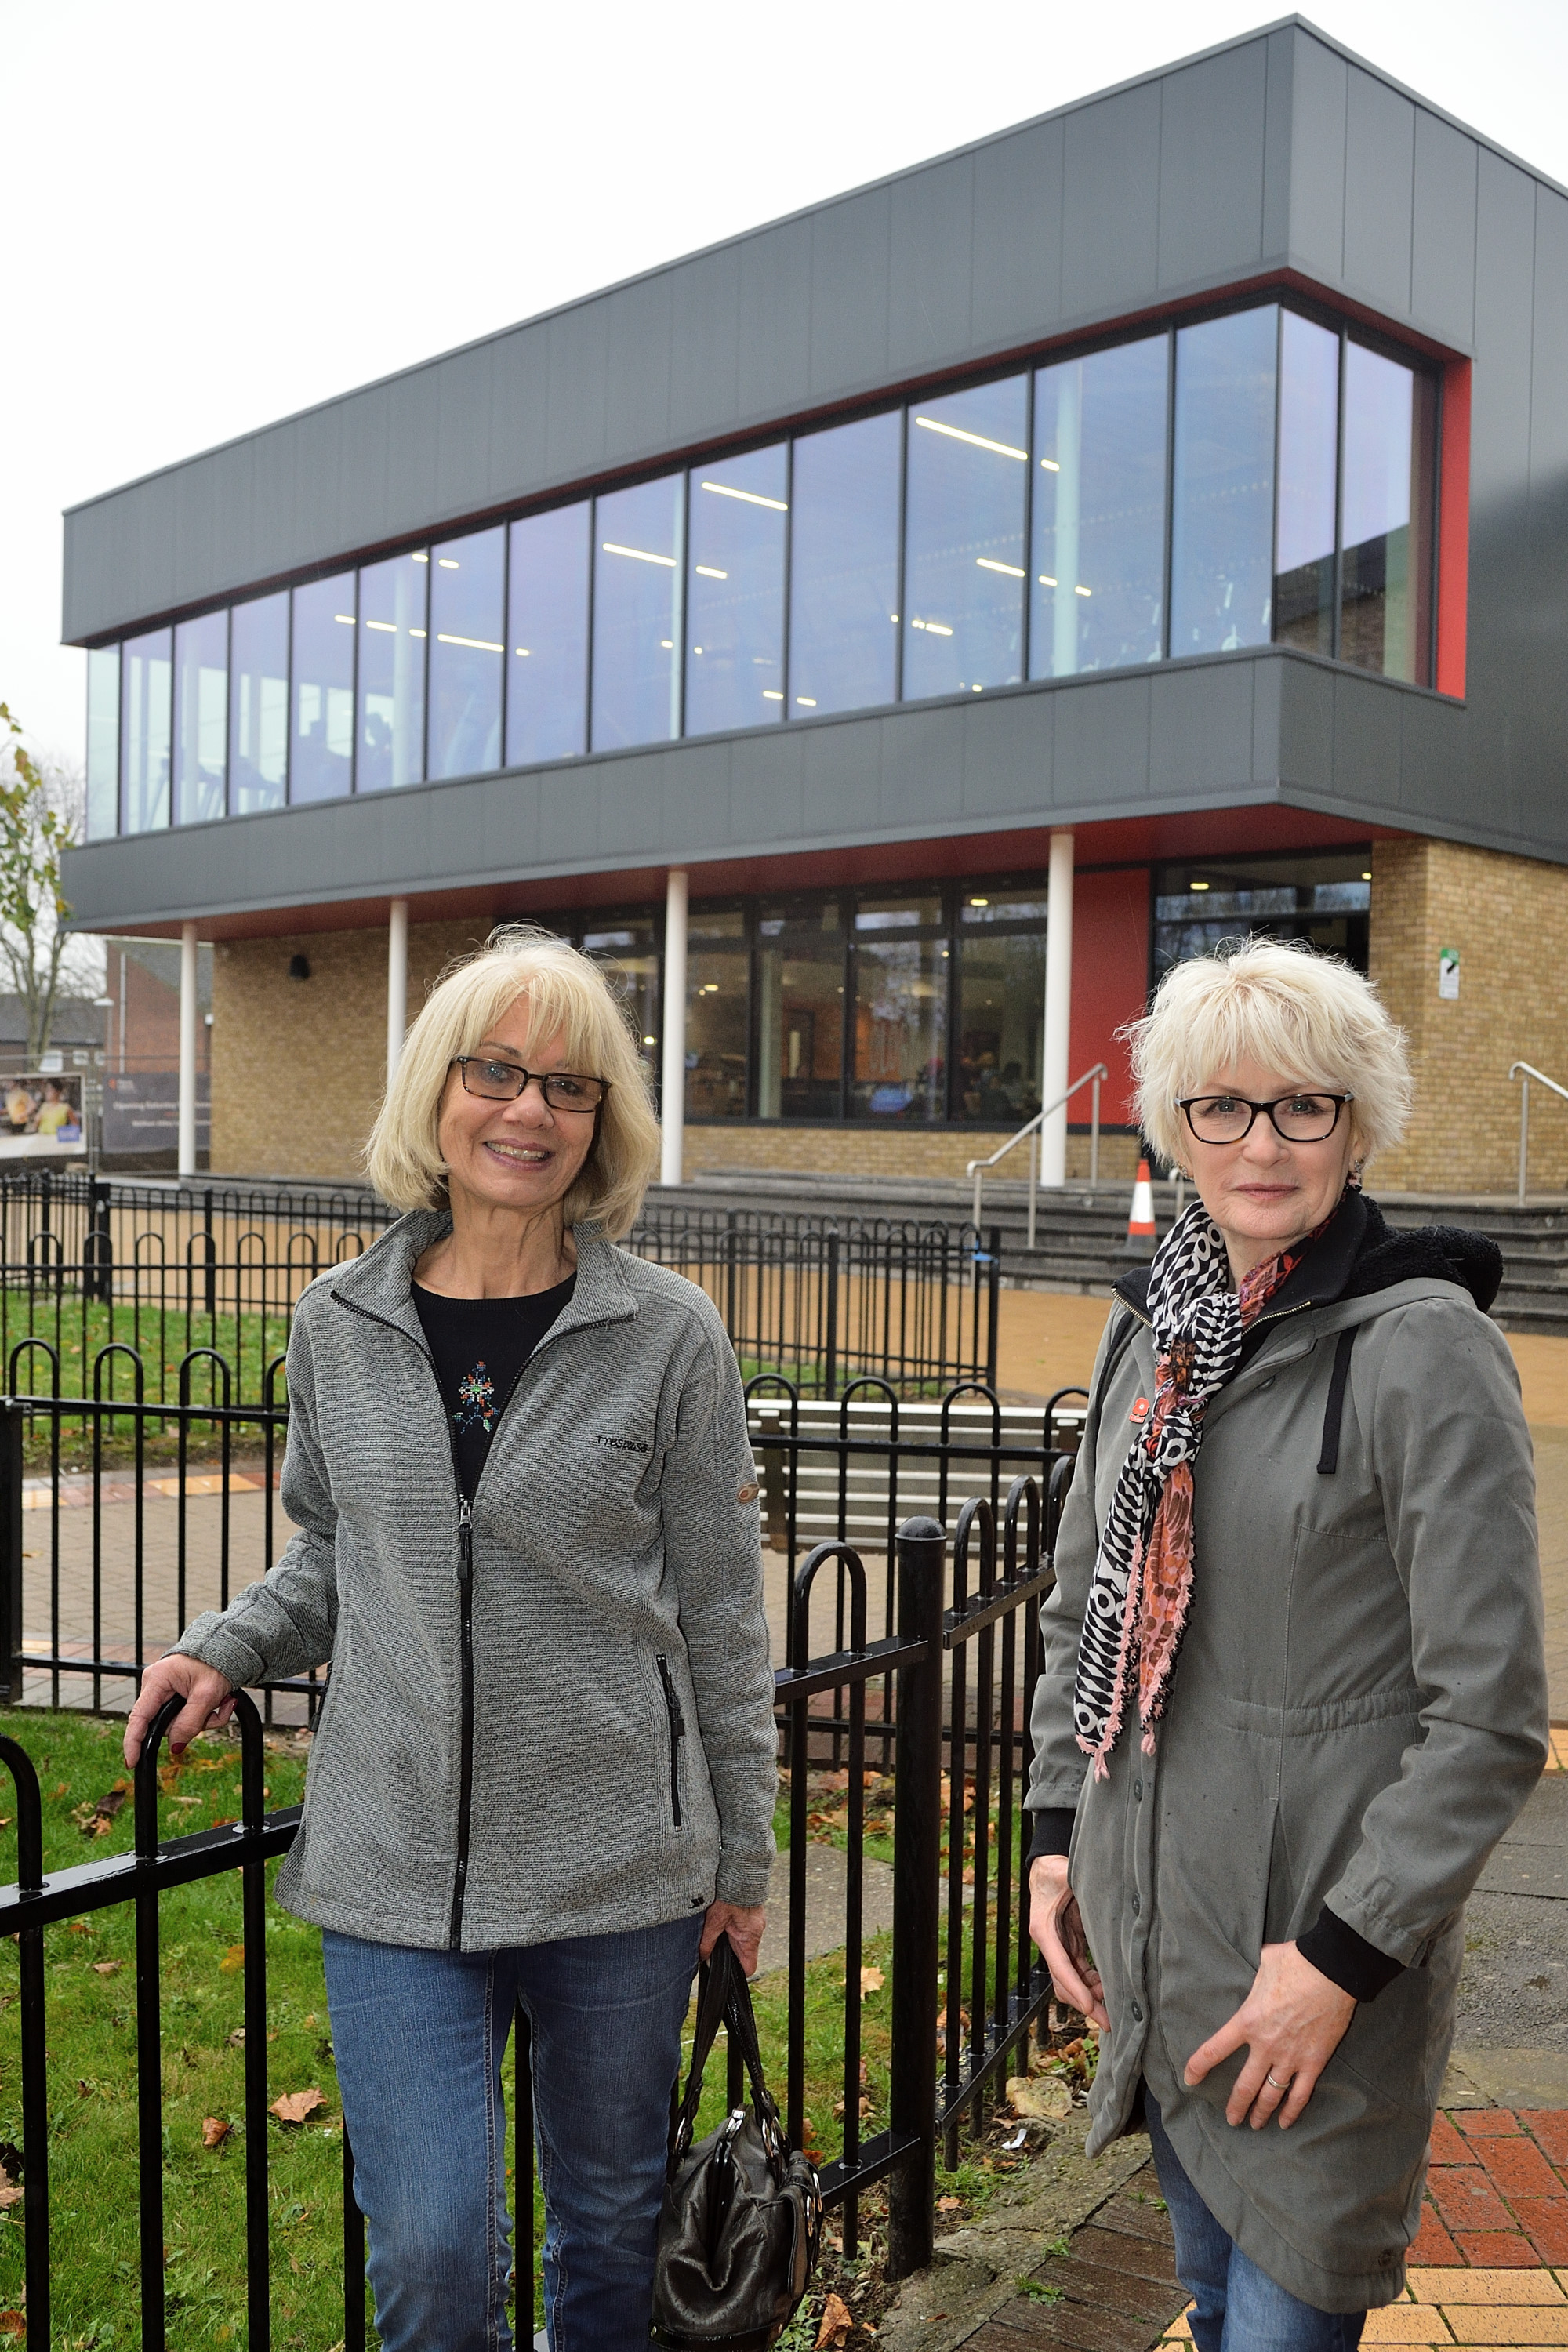 Angela Ayre is the chairwoman of the Labour Party in EF and Kay Morrison, the women's officer are protesting the lack of creche facilities in the new Waltham Abbey Leisure Centre.  Waltham Abbey/Essex. (27-11-2018) EL92353_03